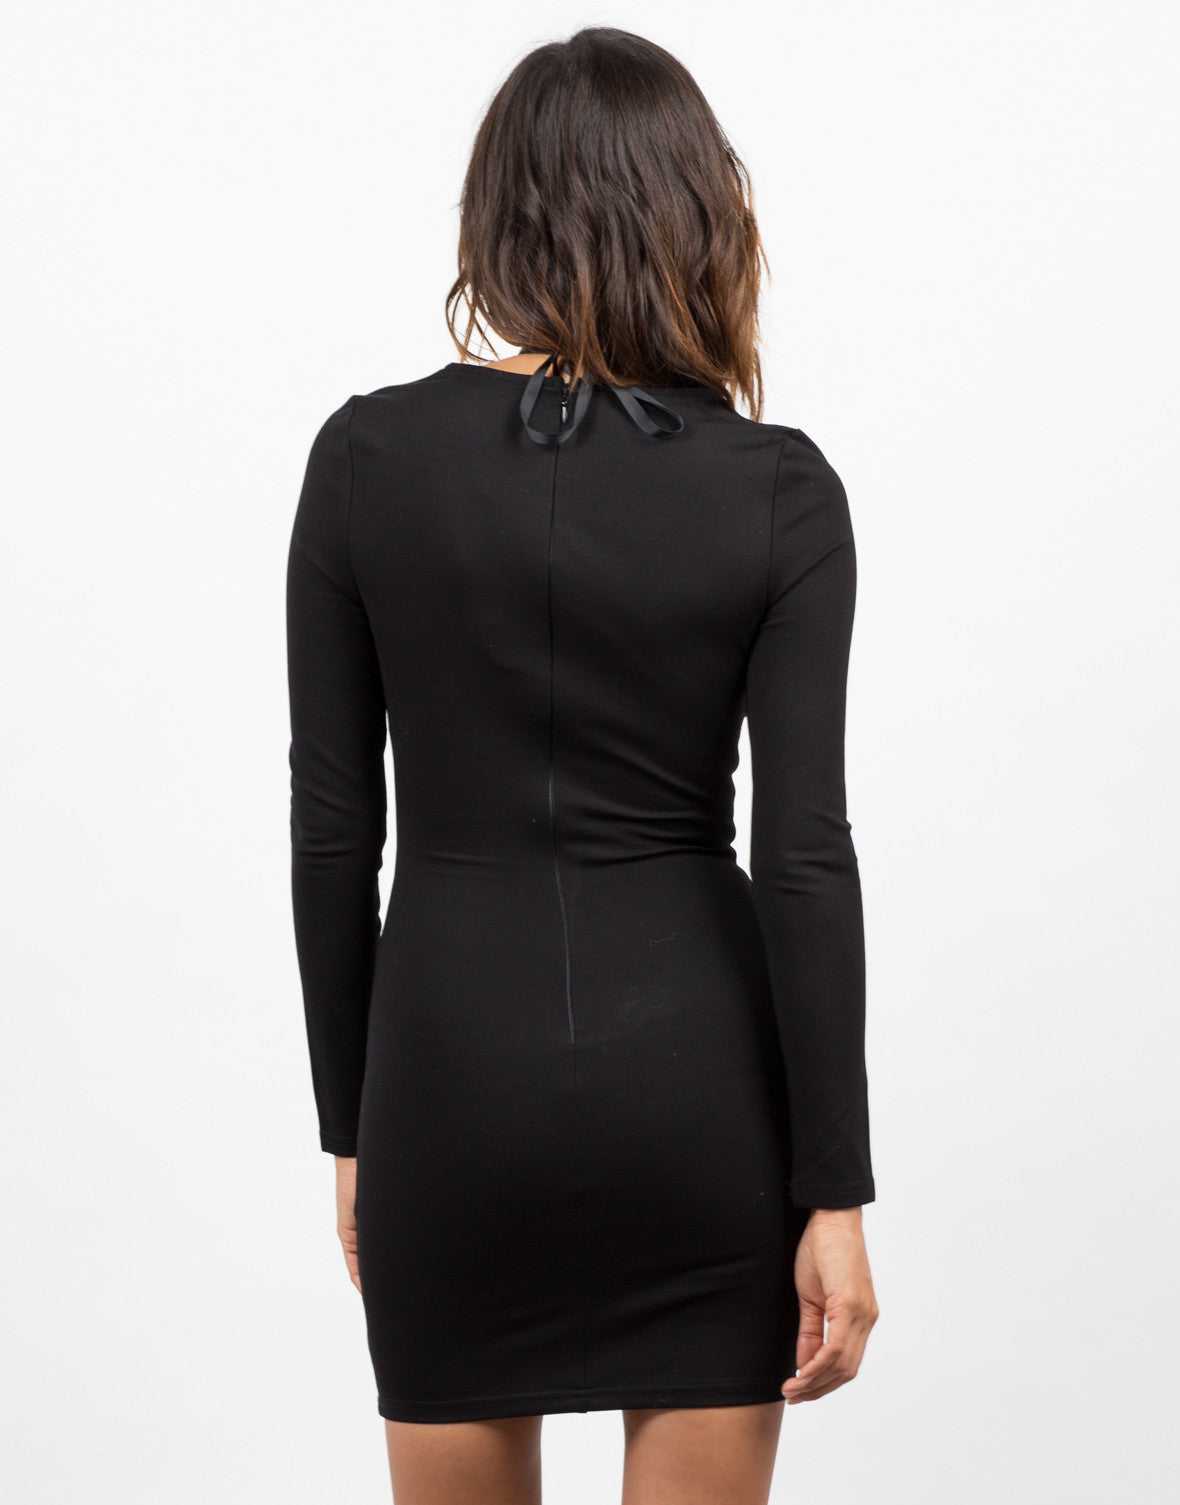 Back View of Lace Up Little Black Dress